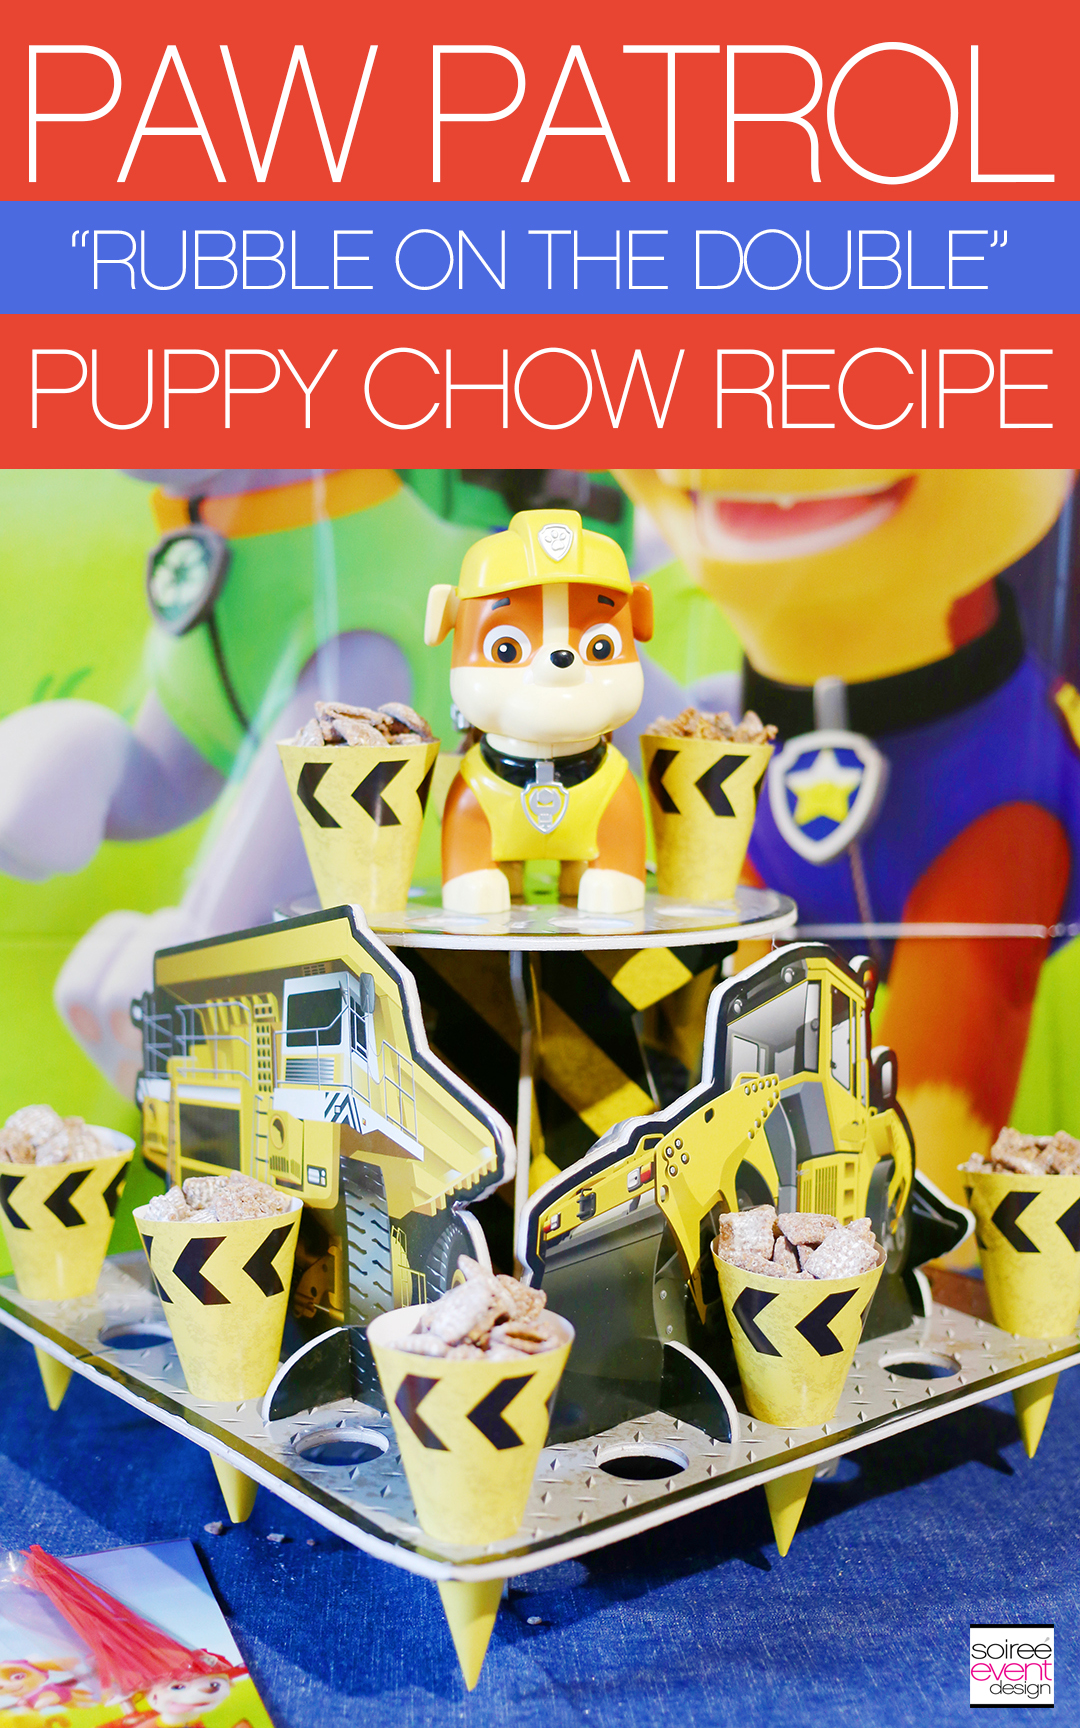 How to Make Paw Patrol Puppy Chow